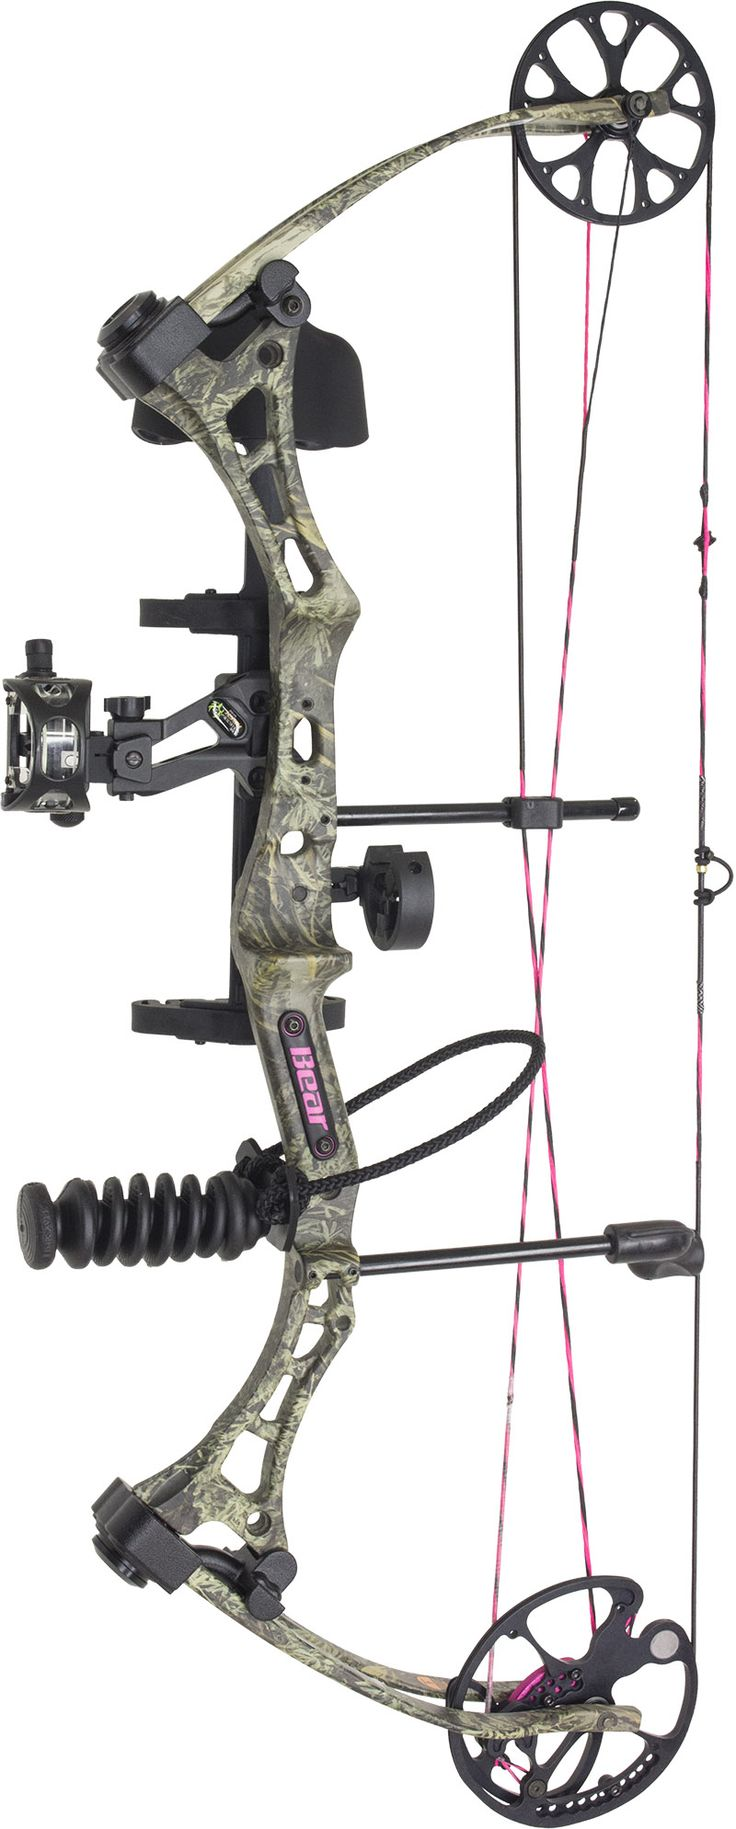 bear finesse compound bow package for women